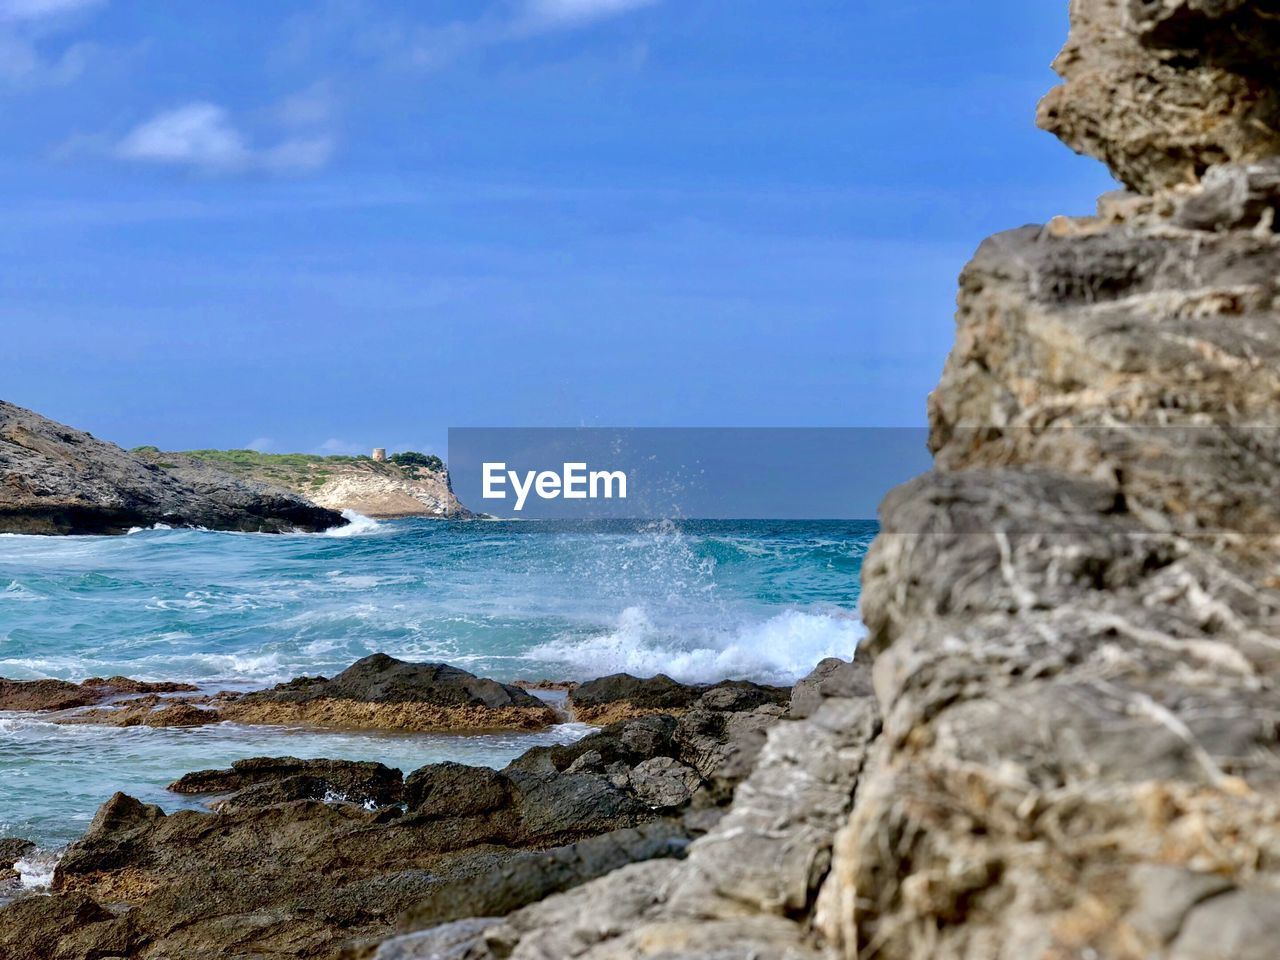 sea, rock, water, rock - object, solid, beauty in nature, beach, land, sky, scenics - nature, rock formation, day, nature, motion, wave, no people, blue, tranquil scene, tranquility, horizon over water, outdoors, rocky coastline